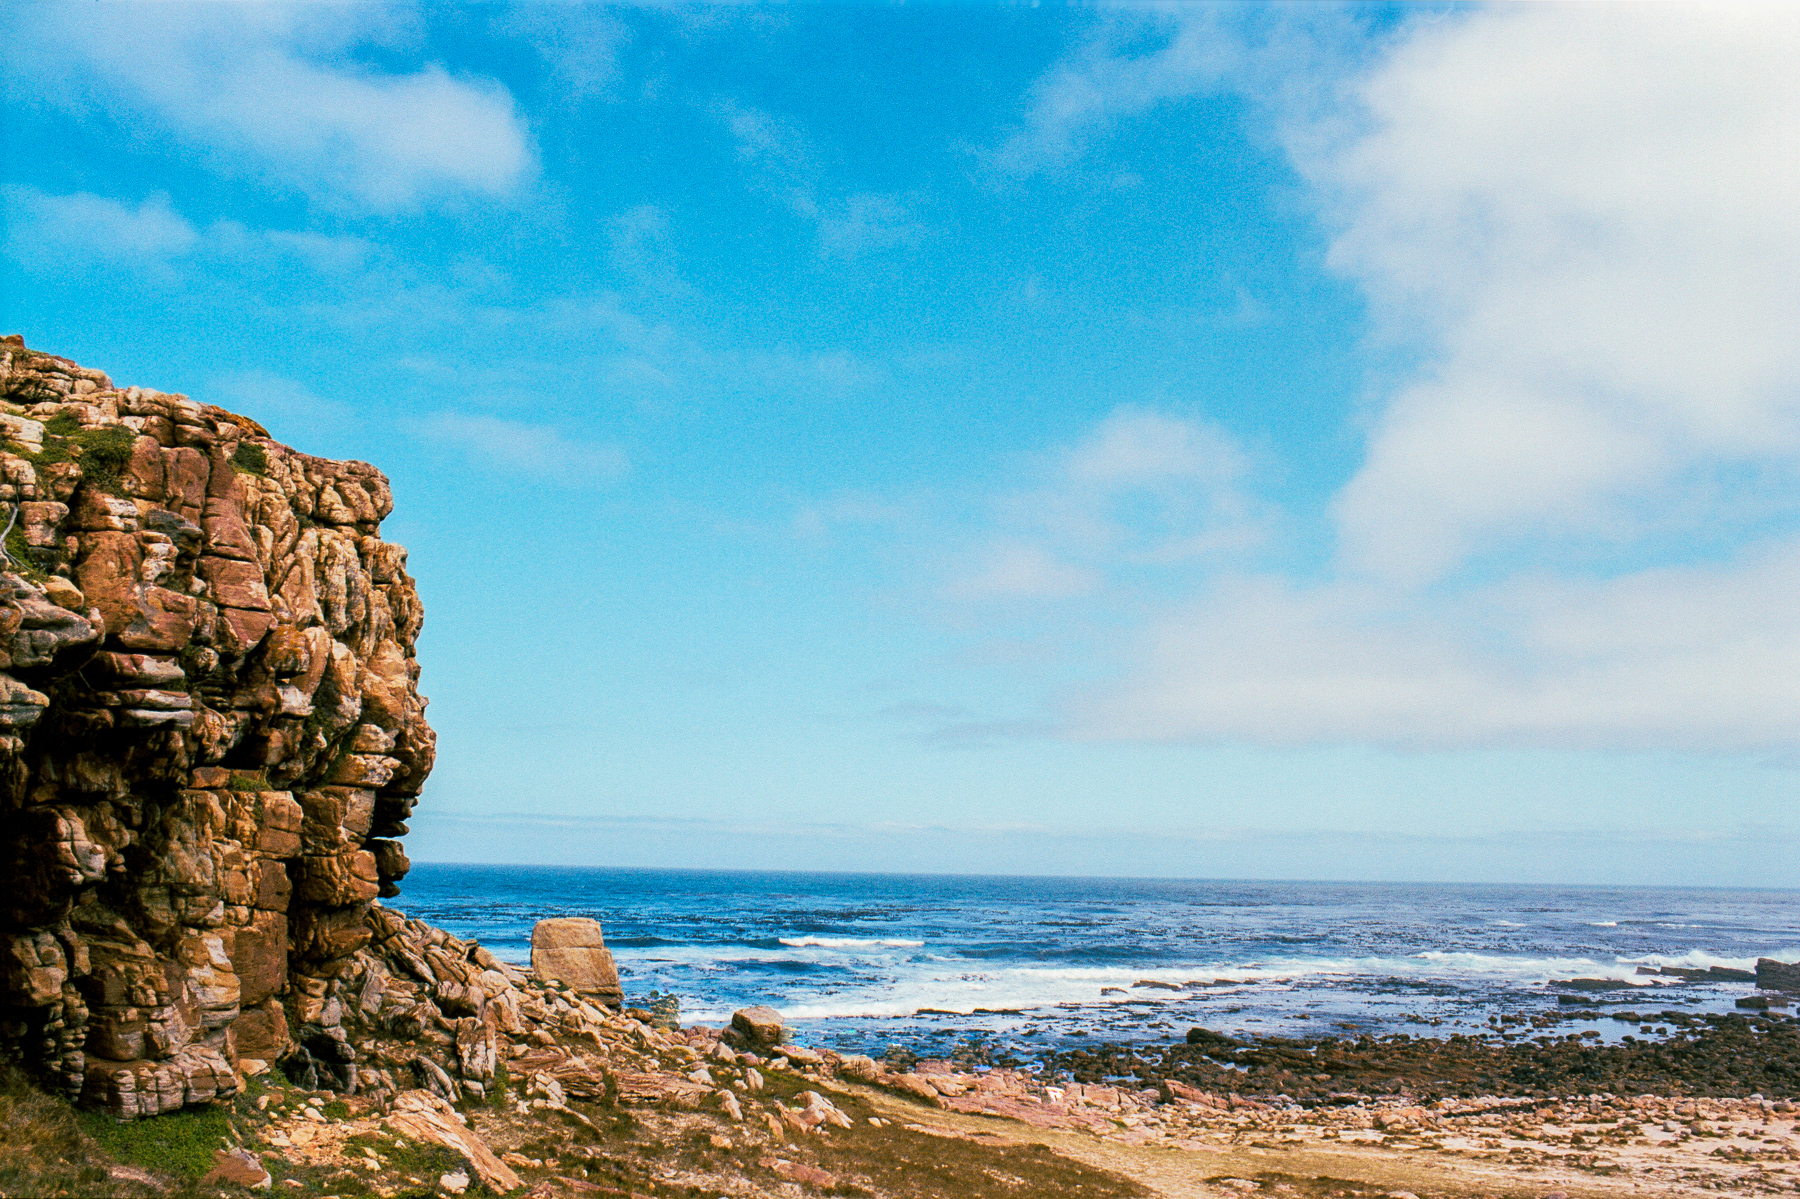 Cape of Good Hope | Cape Town, South Africa |Nikon FM3A | Nikkor 50mm f/1.2